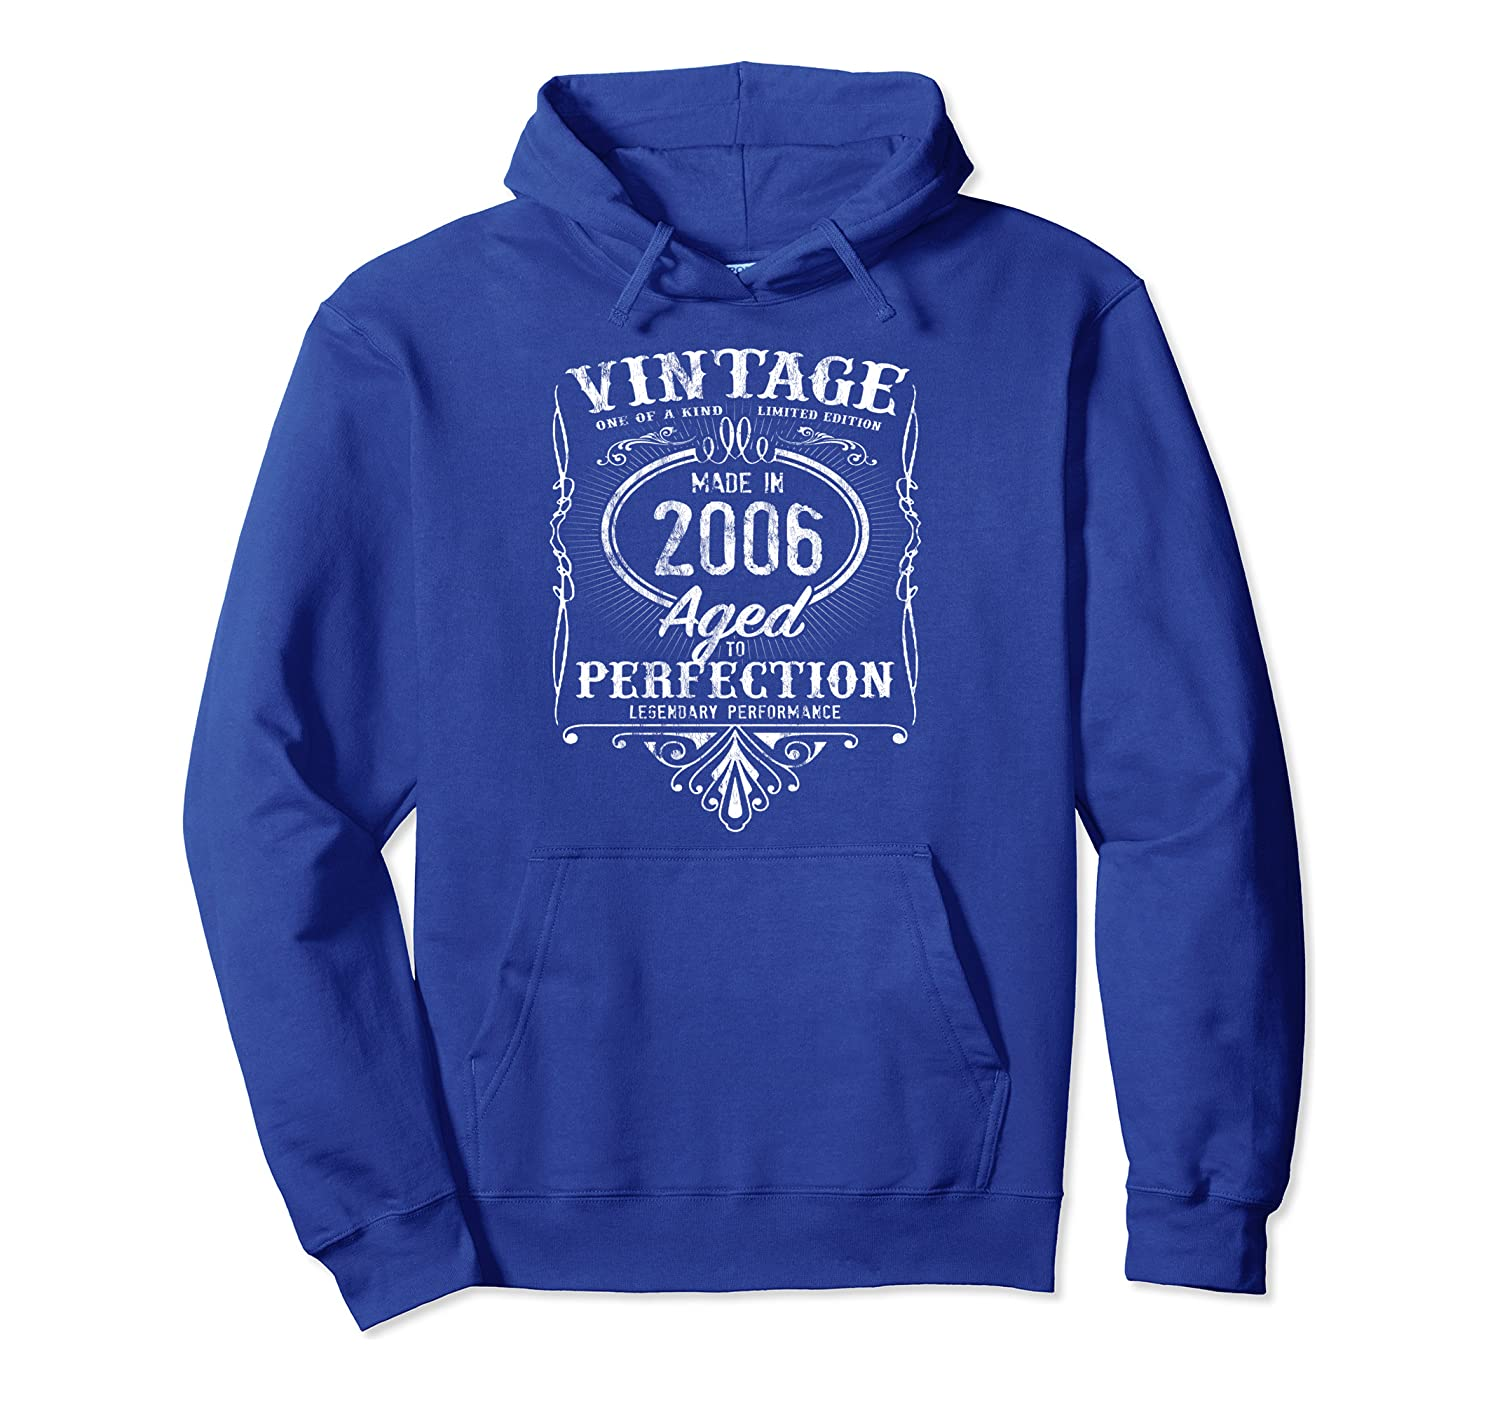 Vintage Made In 2006 Classic 13th Birthday Aged Perfection Pullover Hoodie